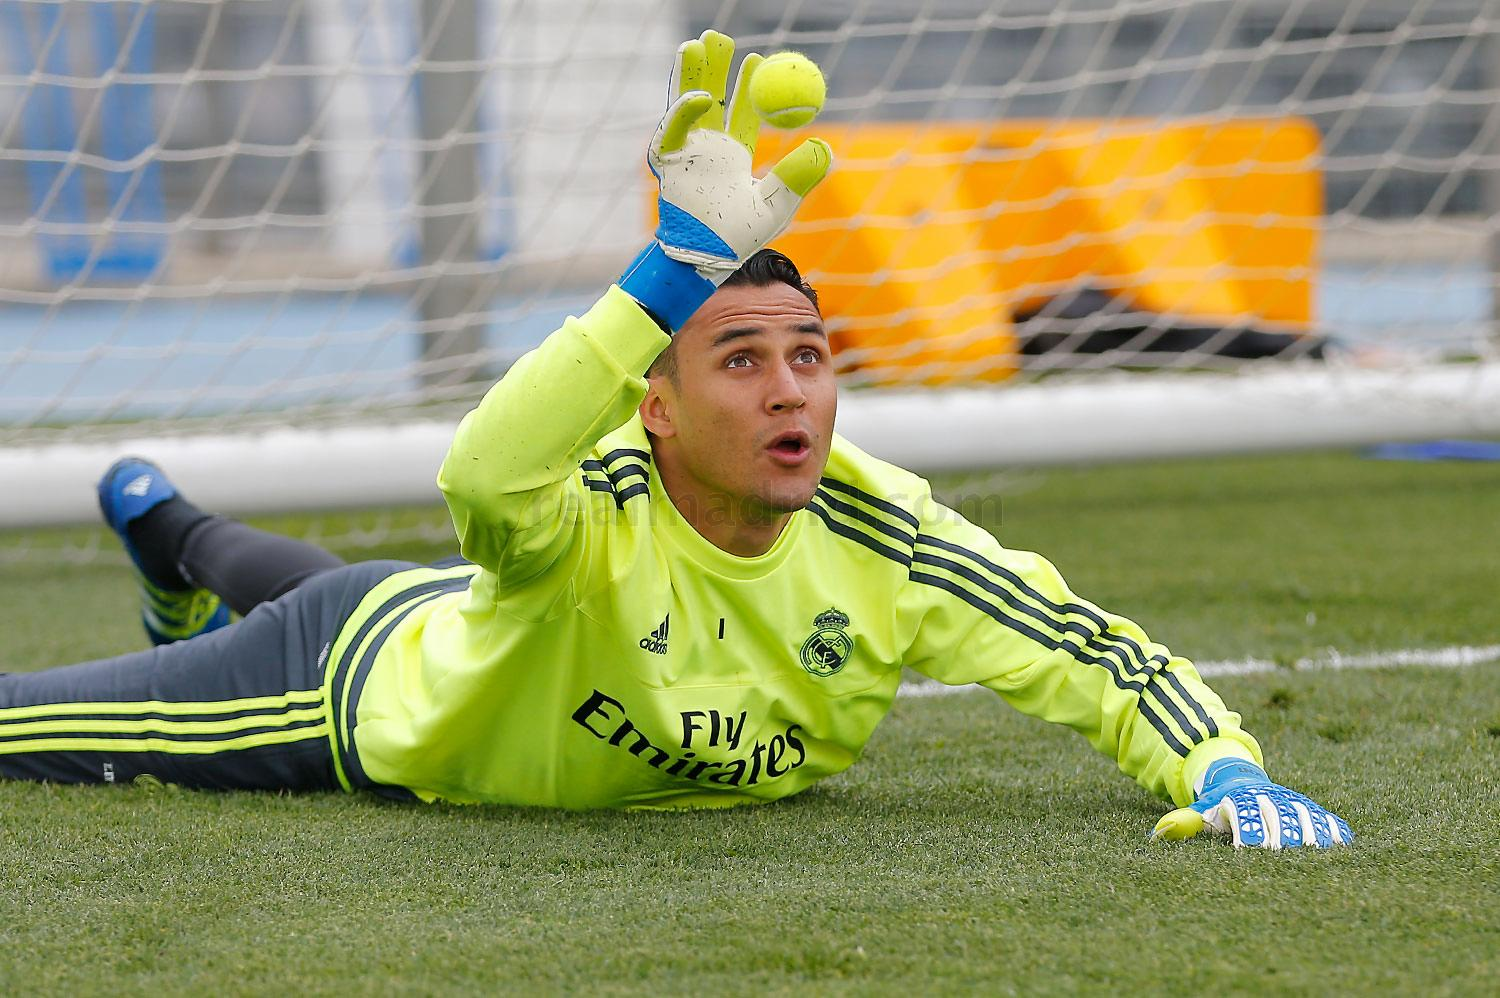 Real Madrid - Entrenamiento del Real Madrid - 14-04-2016